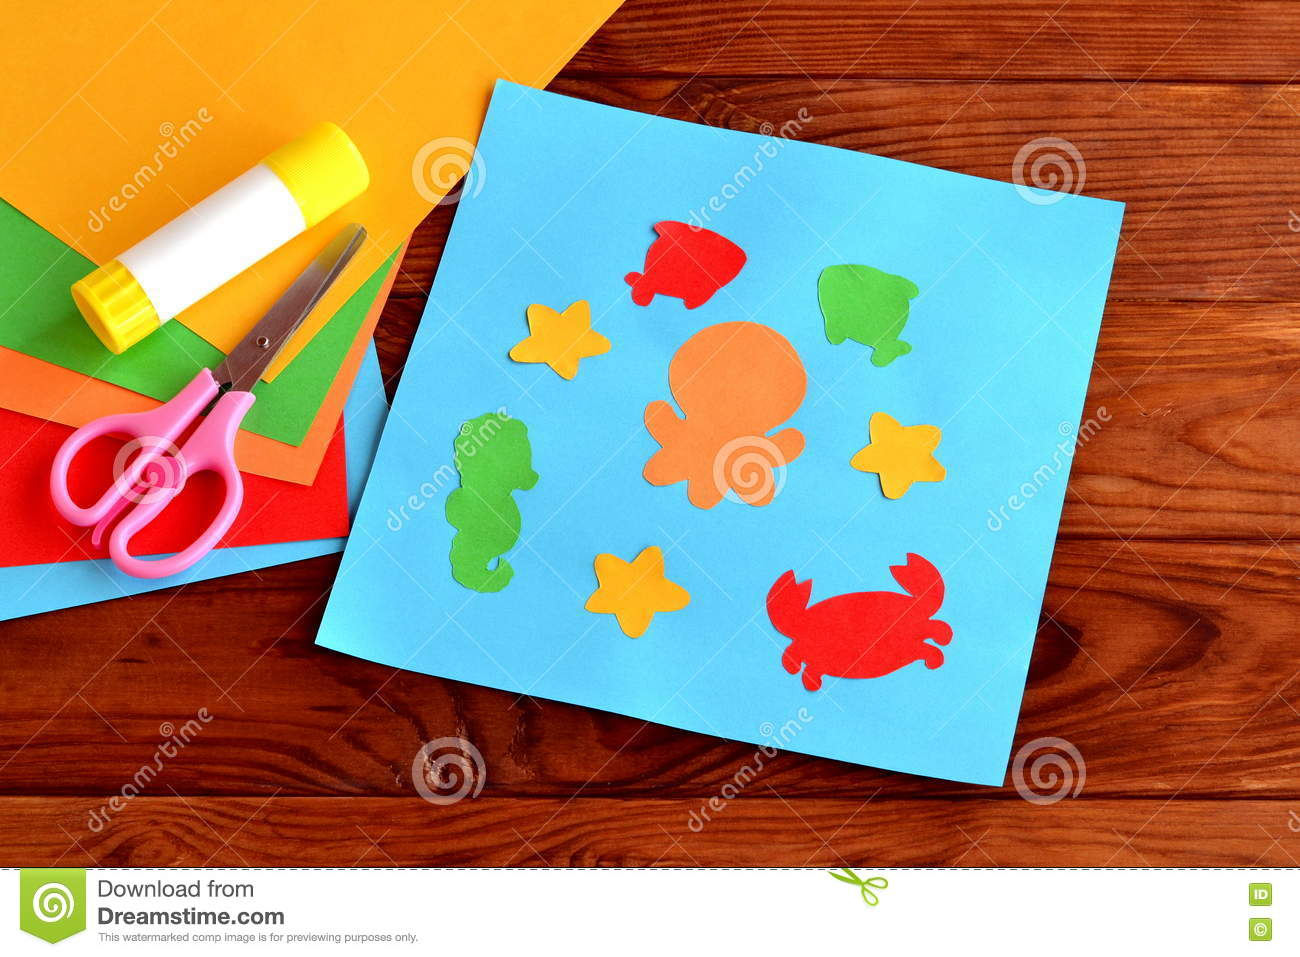 Download Sea Animal And Fish DIY Crafts Project Ideas For Kids Childrens Paper Stock